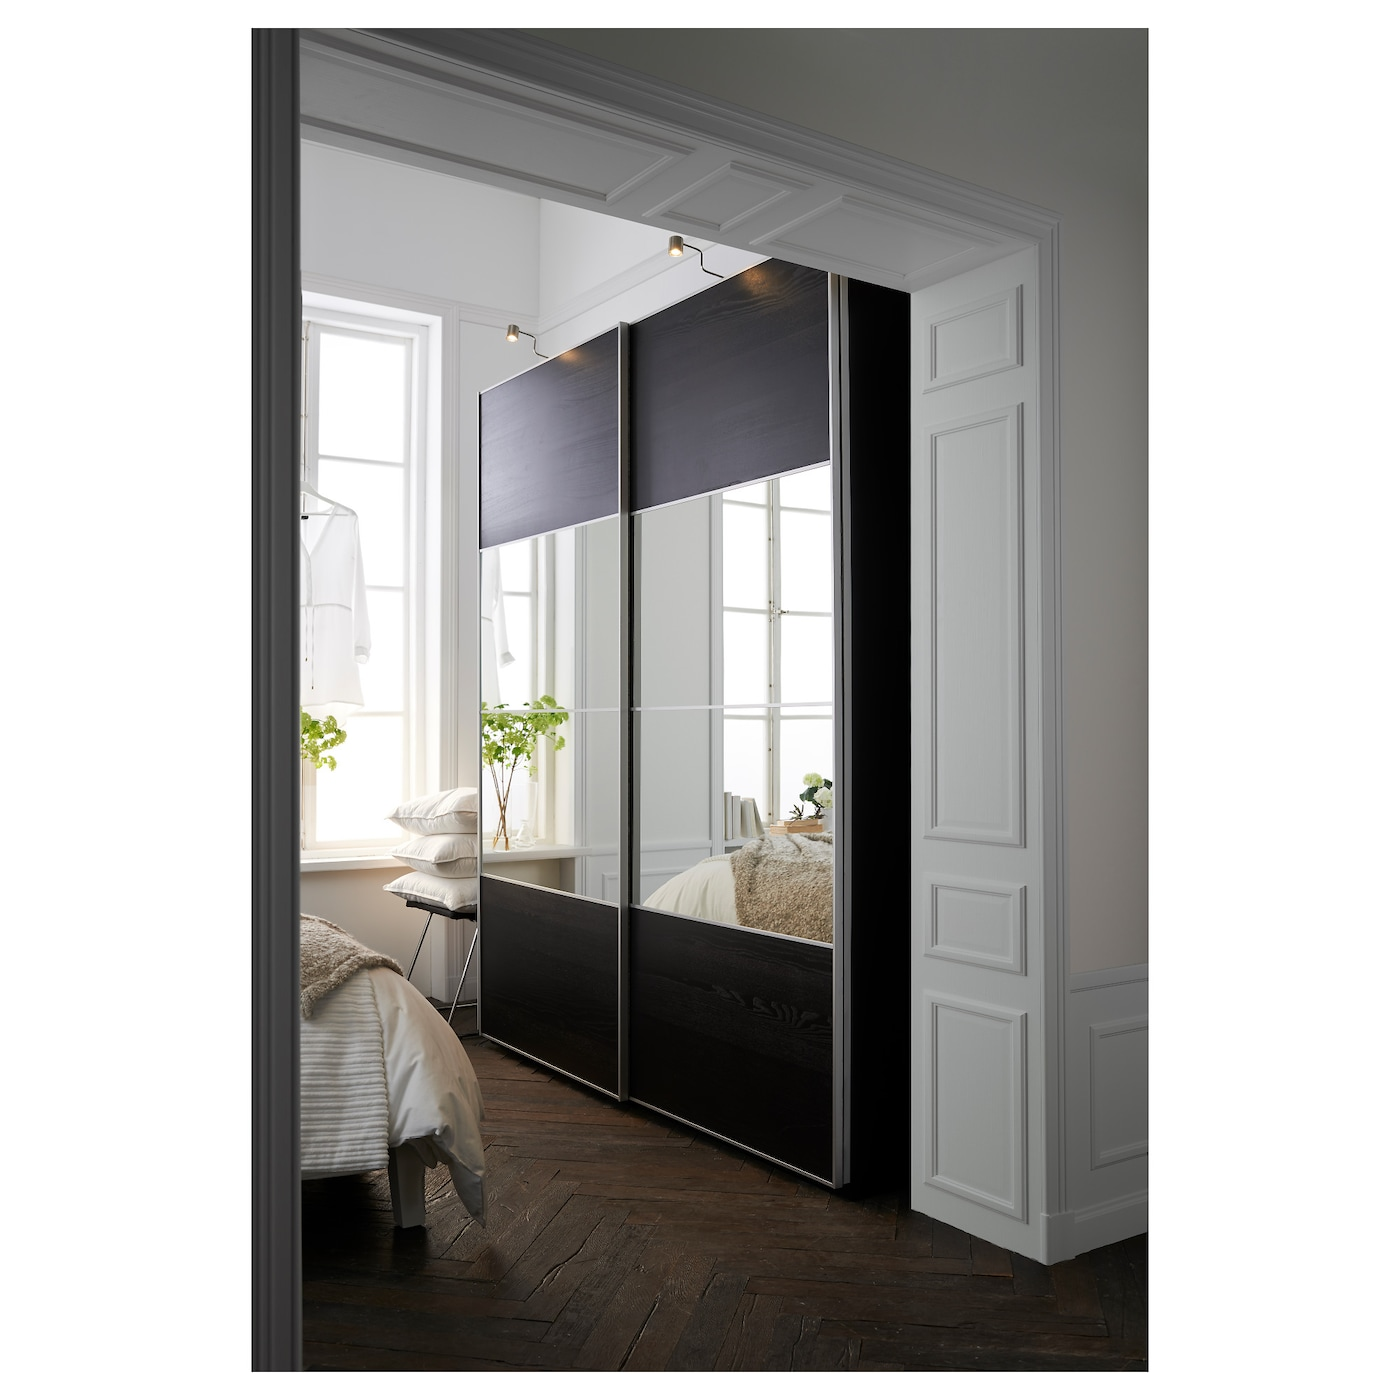 Pax wardrobe black brown auli ilseng 200x66x236 cm ikea for Porte coulissante miroir